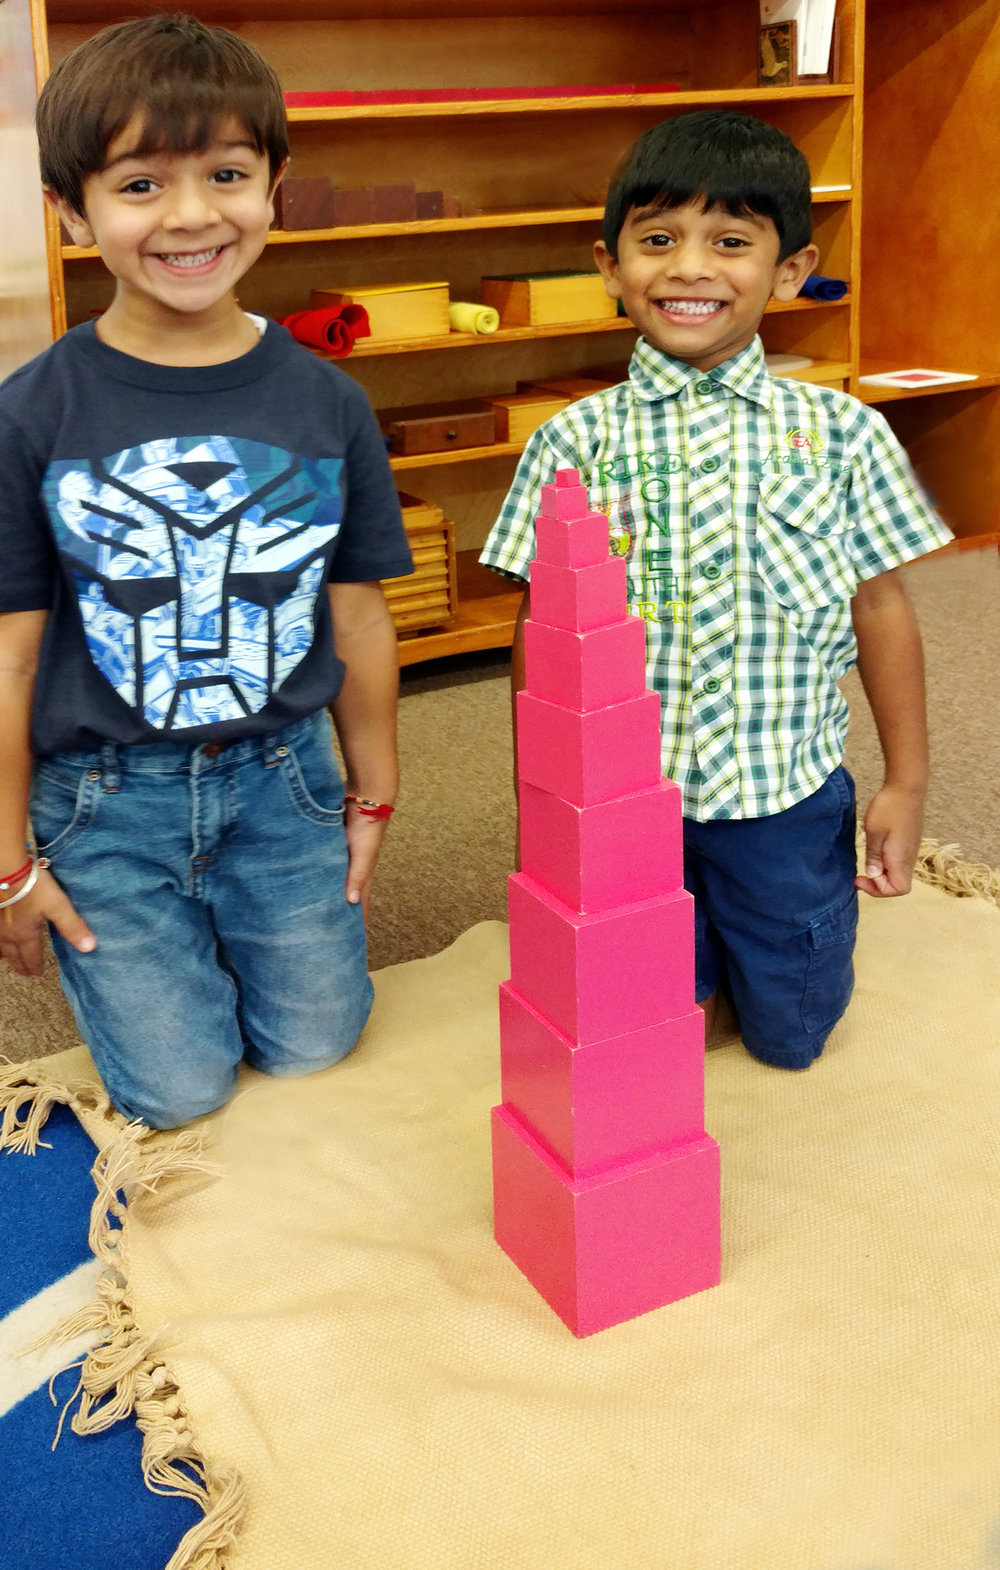 Two of our students in Sensorial are incredibly proud of their accomplishment. They worked together as a team to build the Pink Tower. What a fantastic first day!!!!